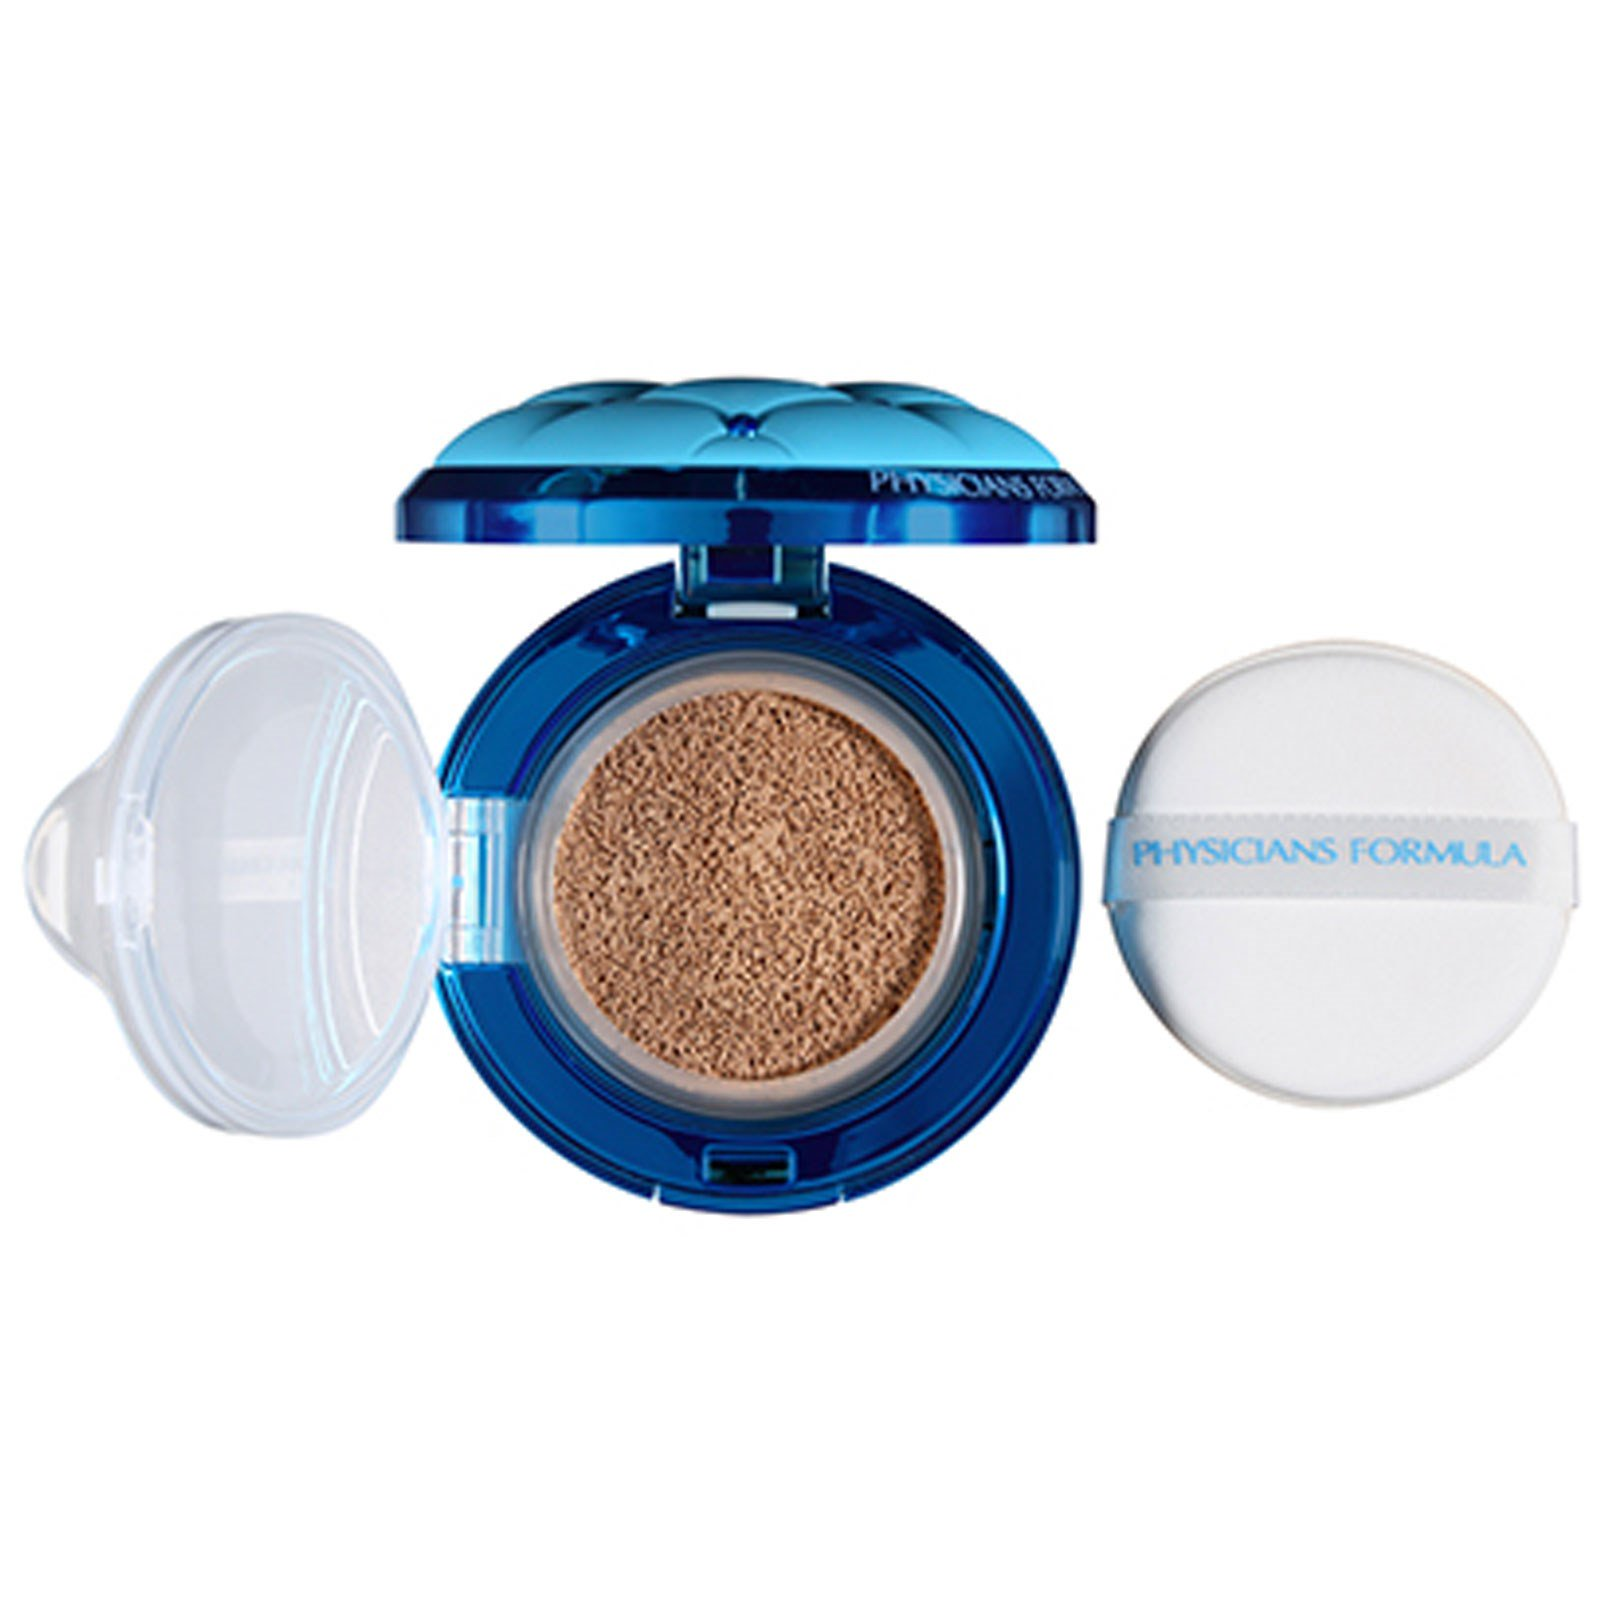 e693795b1 Physicians Formula, Mineral Wear، كريم أساس Cushion، فاتح/متوسط، ...